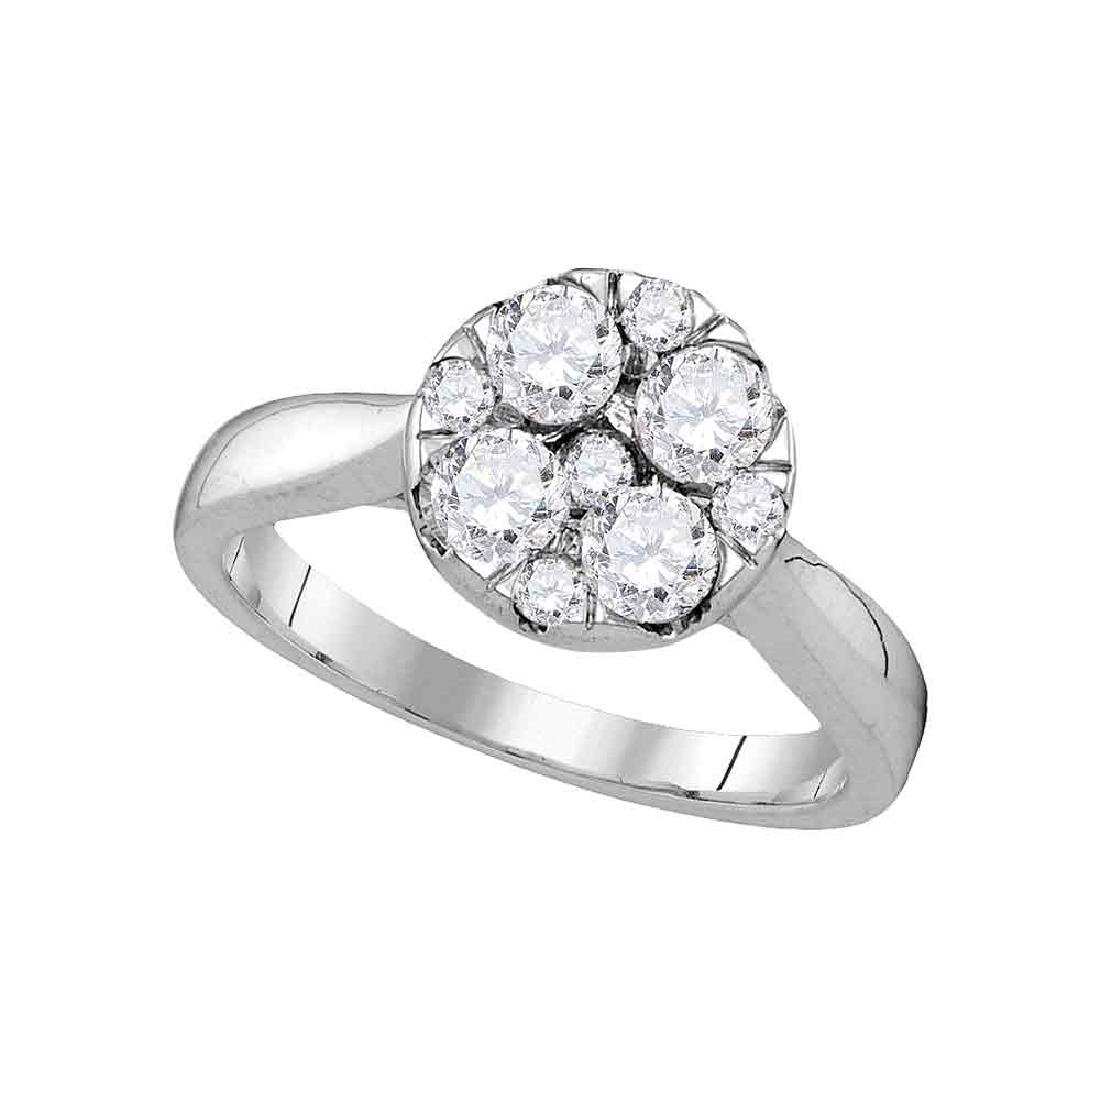 1.01 CTW Diamond Cluster Bridal Engagement Ring 14KT